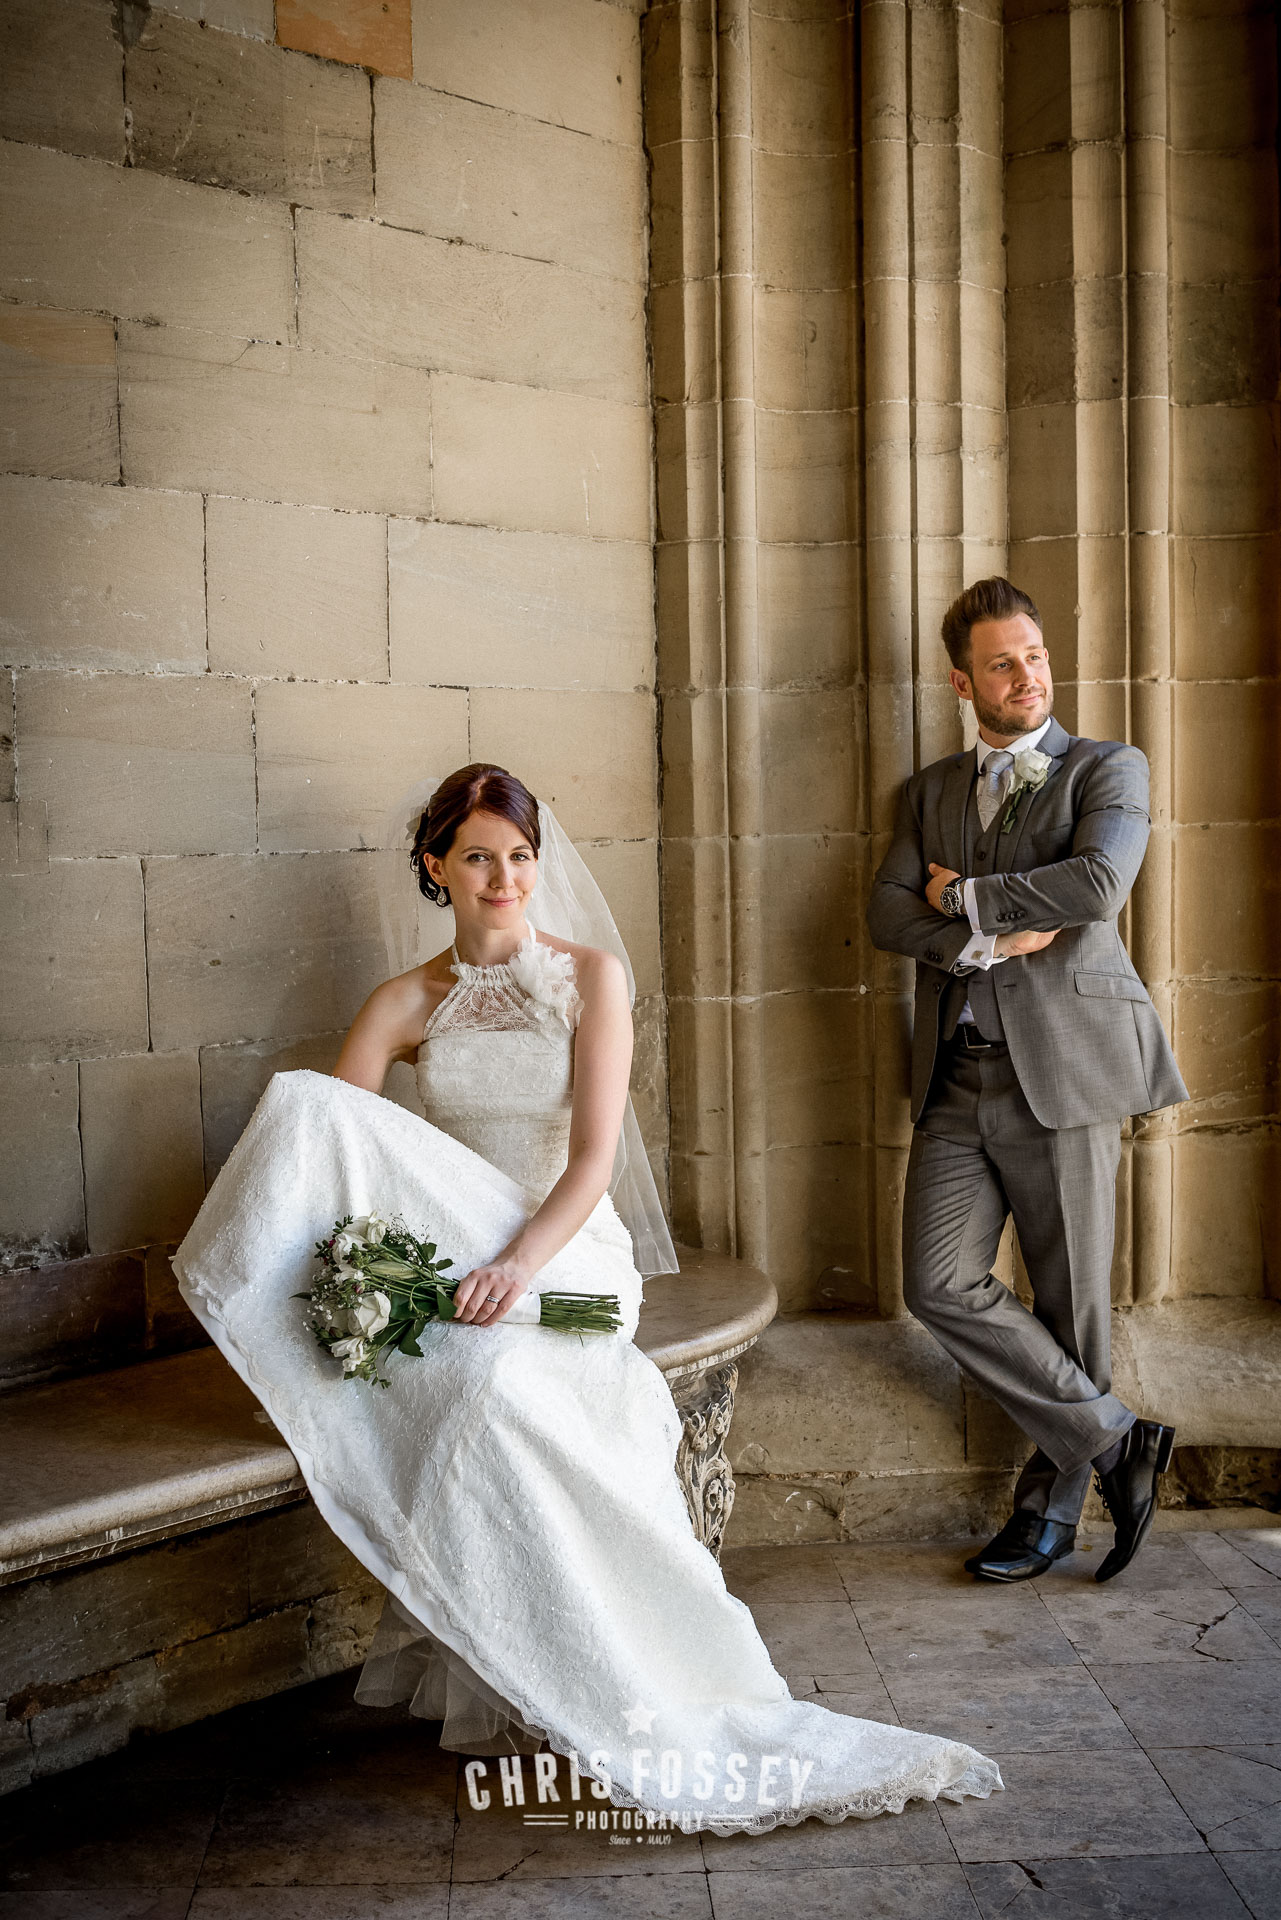 Warwickshire Wedding Photography Portfolio-Warwick Castle Wedding Photography by Chris Fossey (2)-25